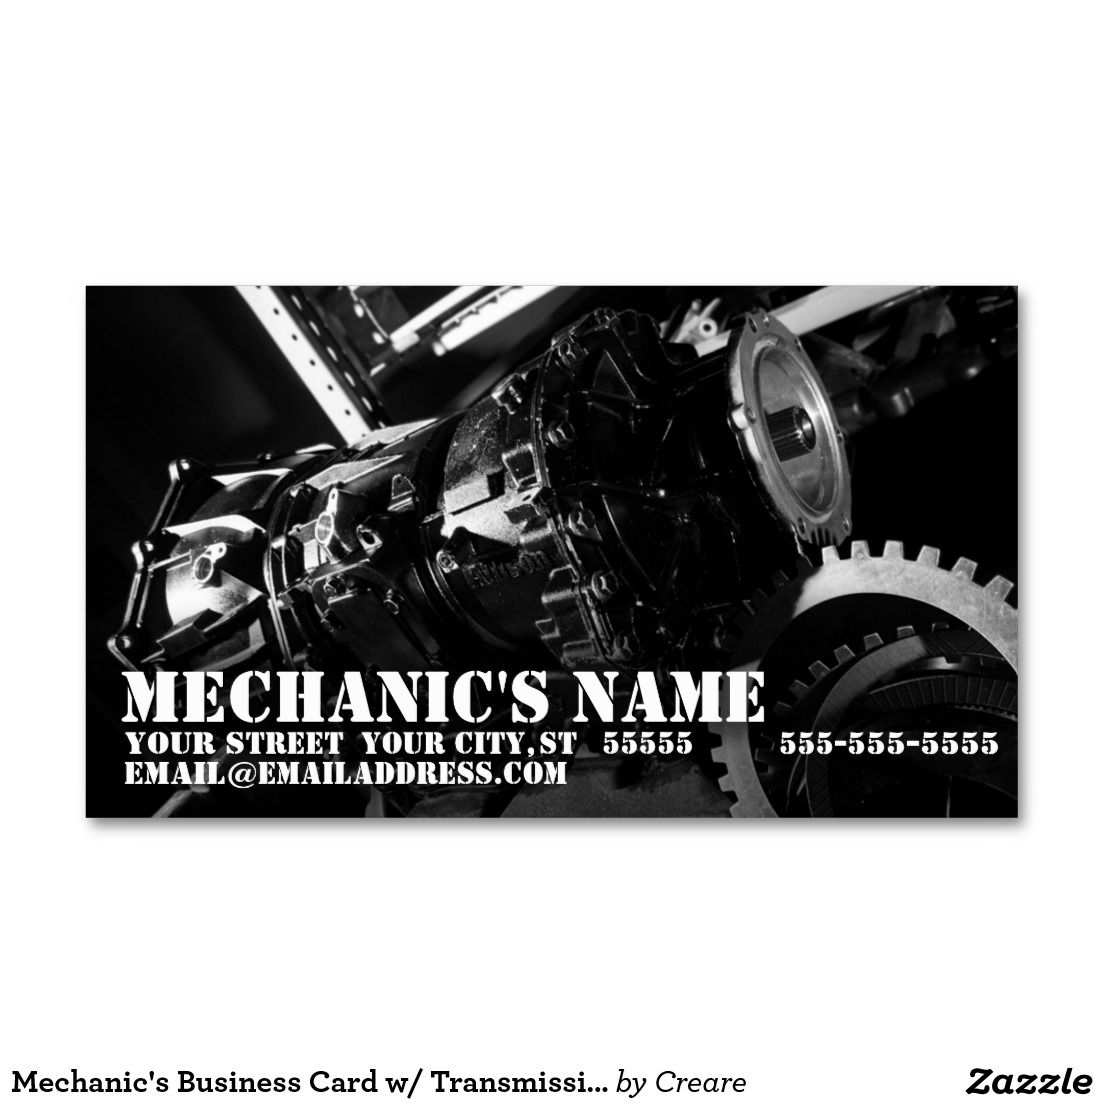 Wrench mobile mechanic auto repair business cards miscdesign mechanics business card w transmission photo colourmoves Image collections